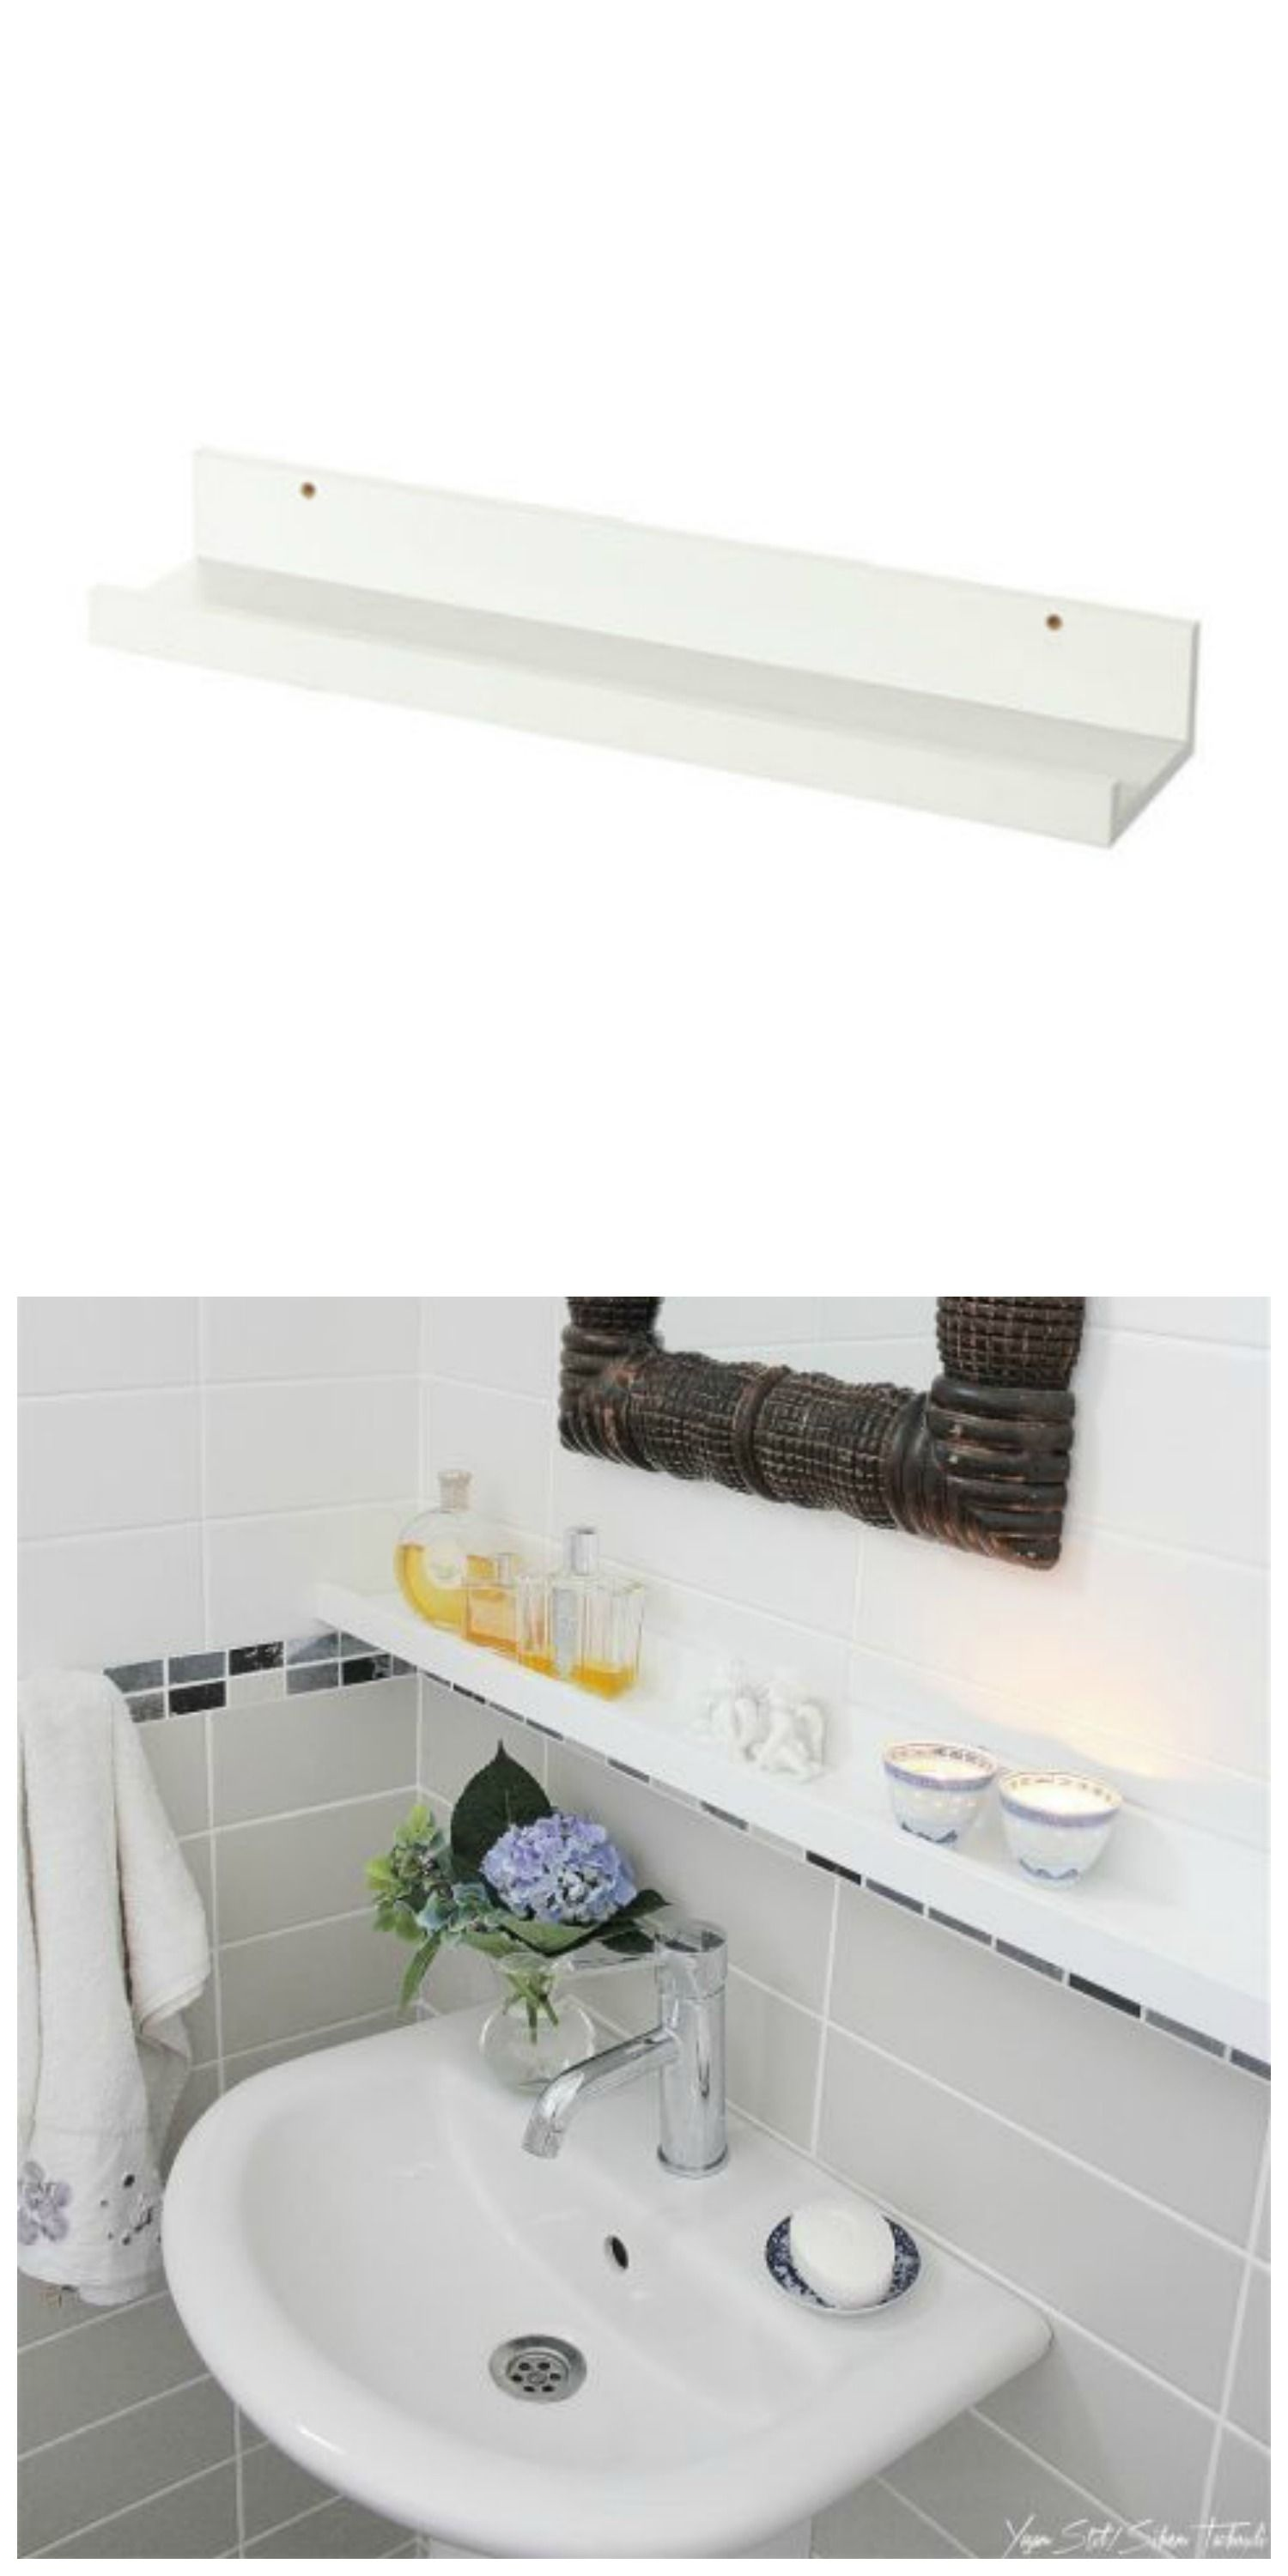 The Coolest Ikea Hacks We Ve Ever Seen Ikea Picture Ledge Ikea Pictures Small Bathroom Storage